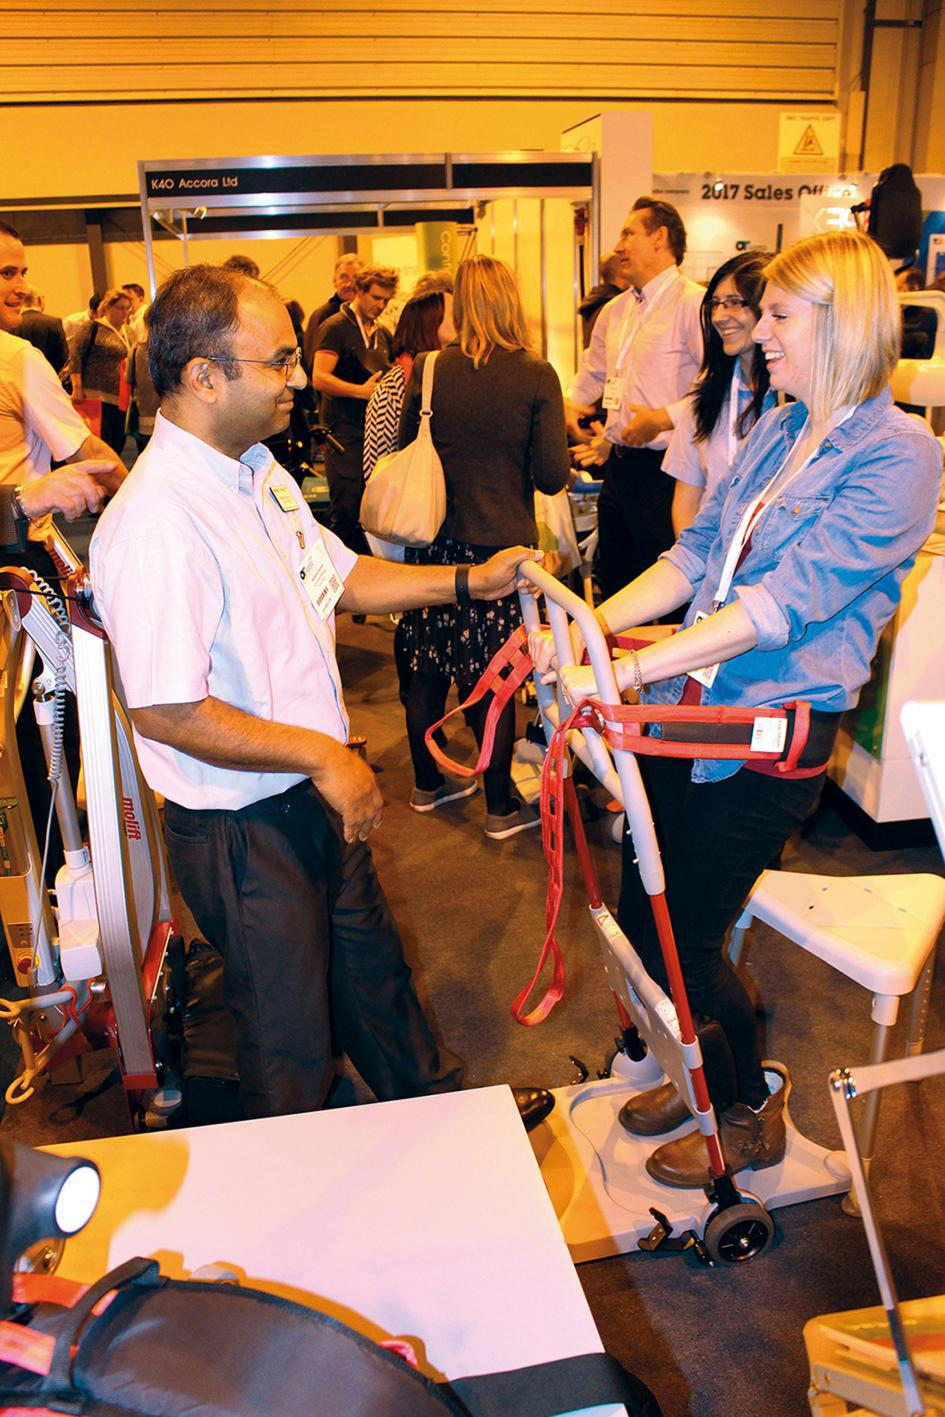 OT-SUPPORTED NEW ETAC R82 PRODUCT SHOWCASE GENERATES SIGNIFICANT INTEREST AT OCCUPATIONAL THERAPY SHOW